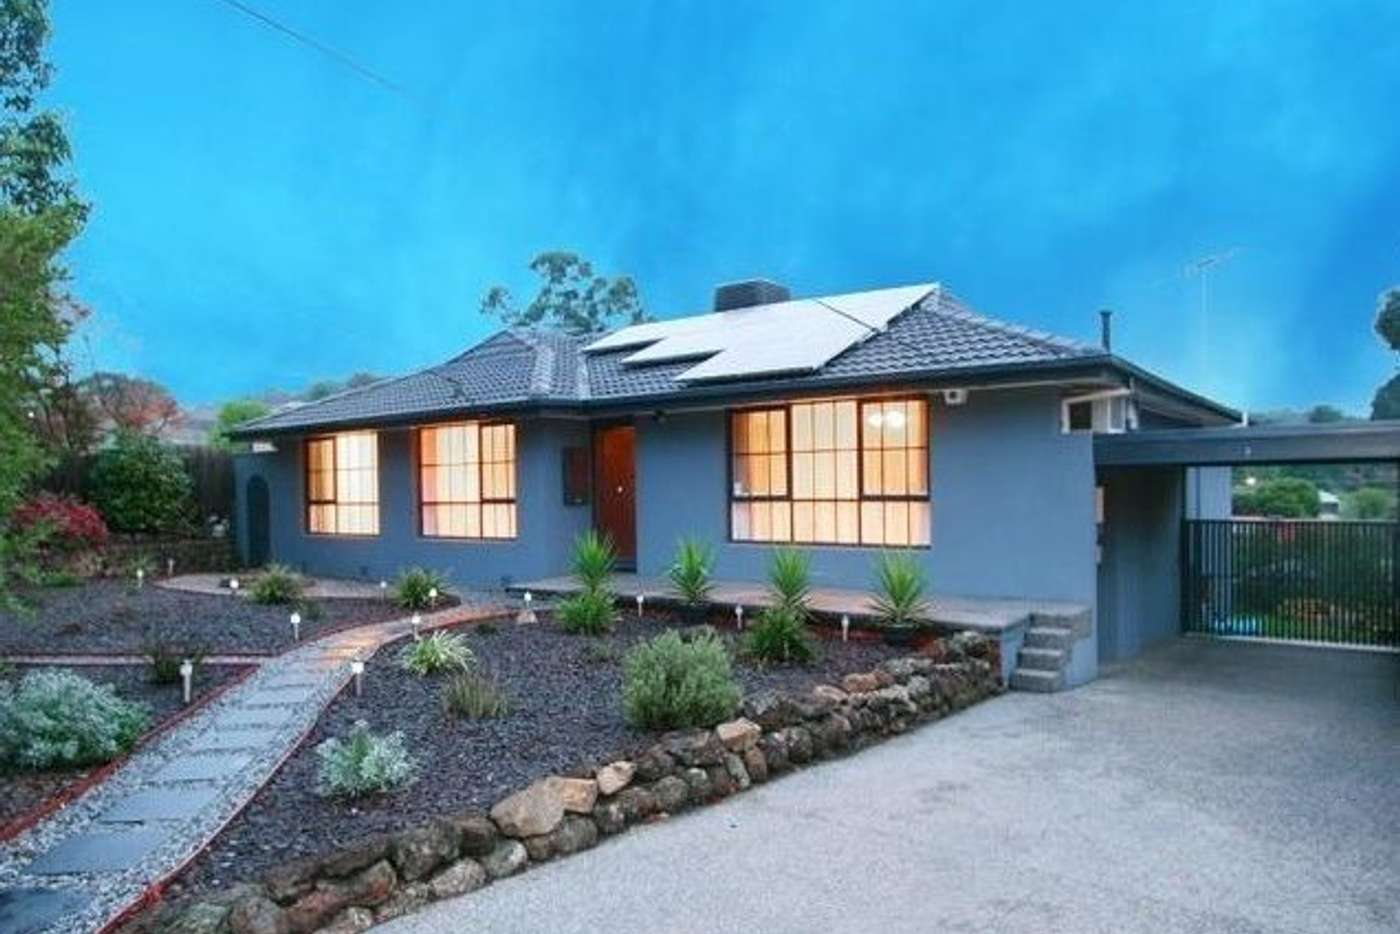 Main view of Homely house listing, 20 Bristol Court, Kilsyth VIC 3137